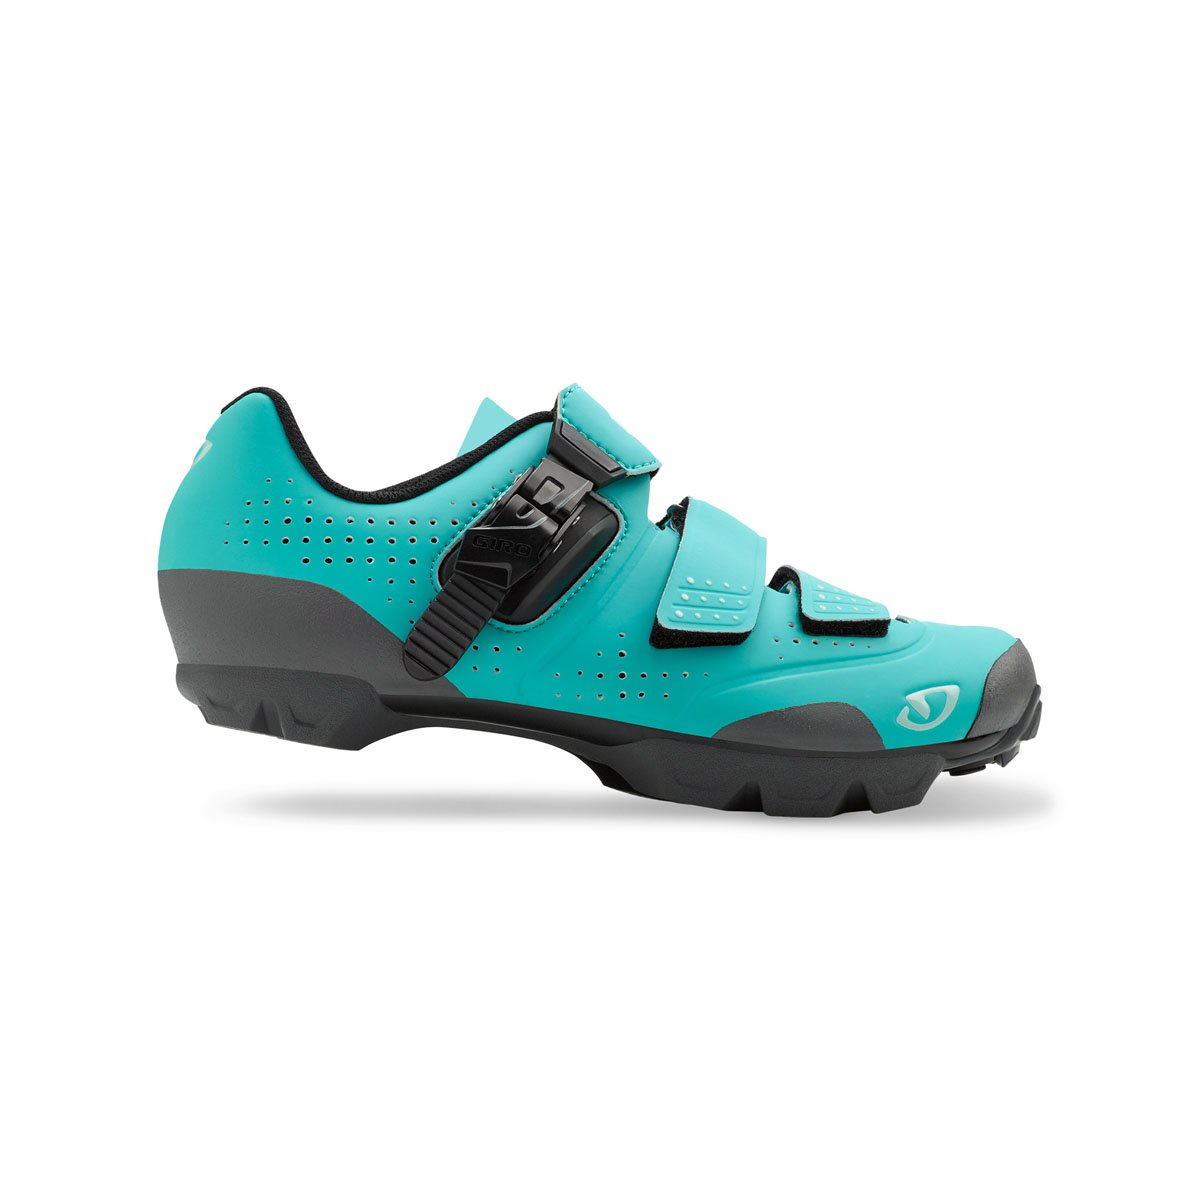 Giro Manta R Cycling Shoes - Women's B076B1VL8Z 40.5|Glacier/Titanium